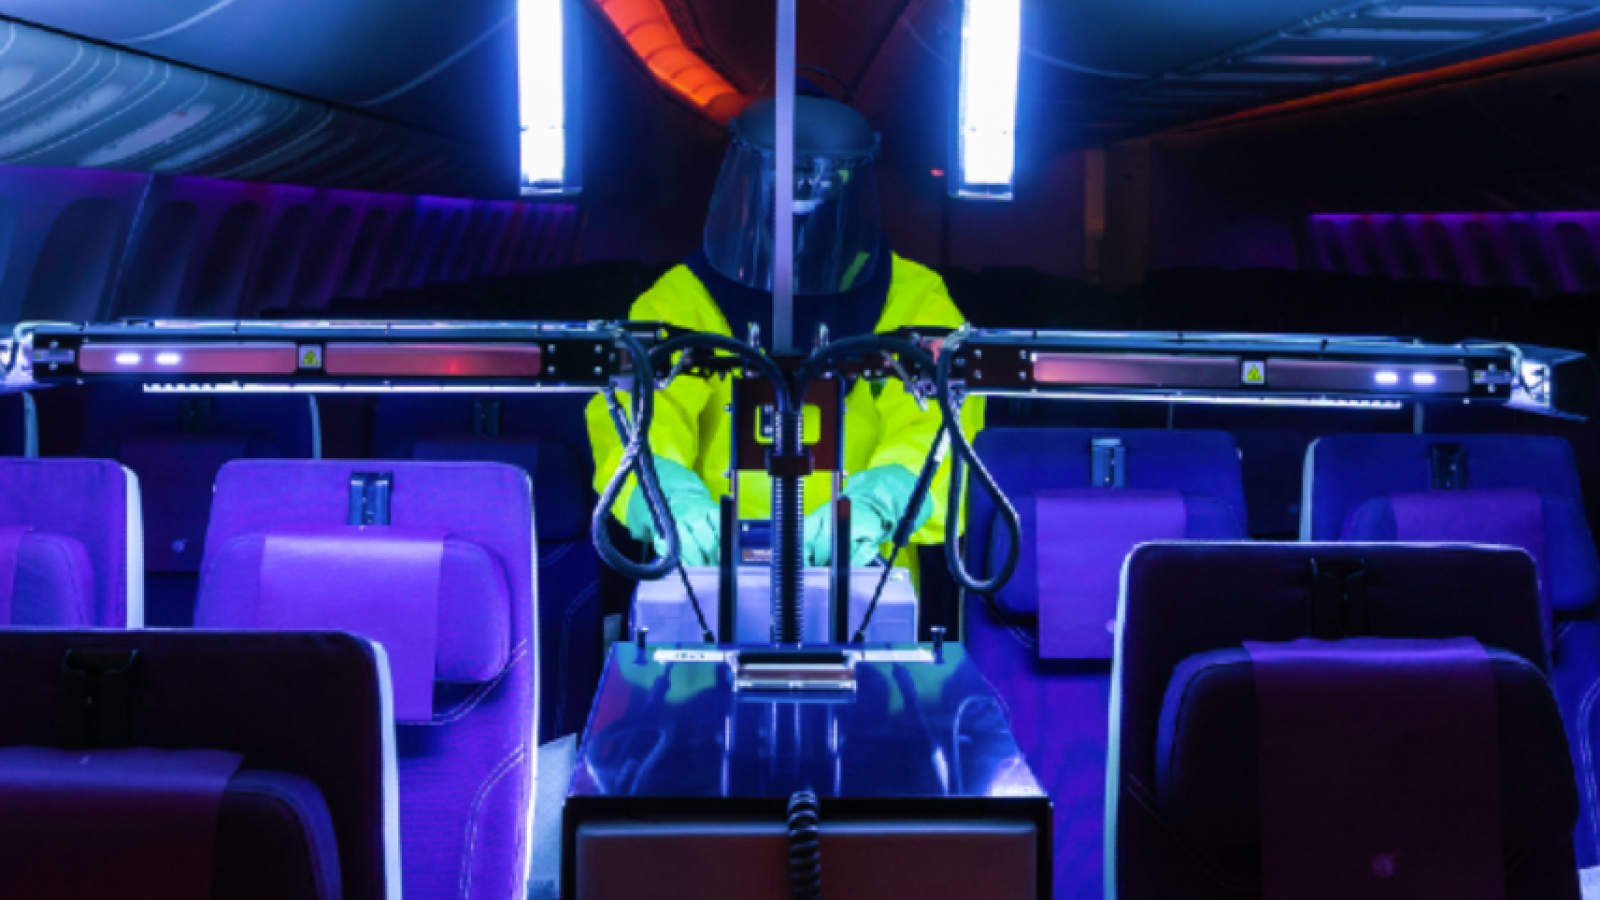 Qatar Airways introduces the latest version of Honeywell's Ultraviolet Cabin Disinfection technology on board